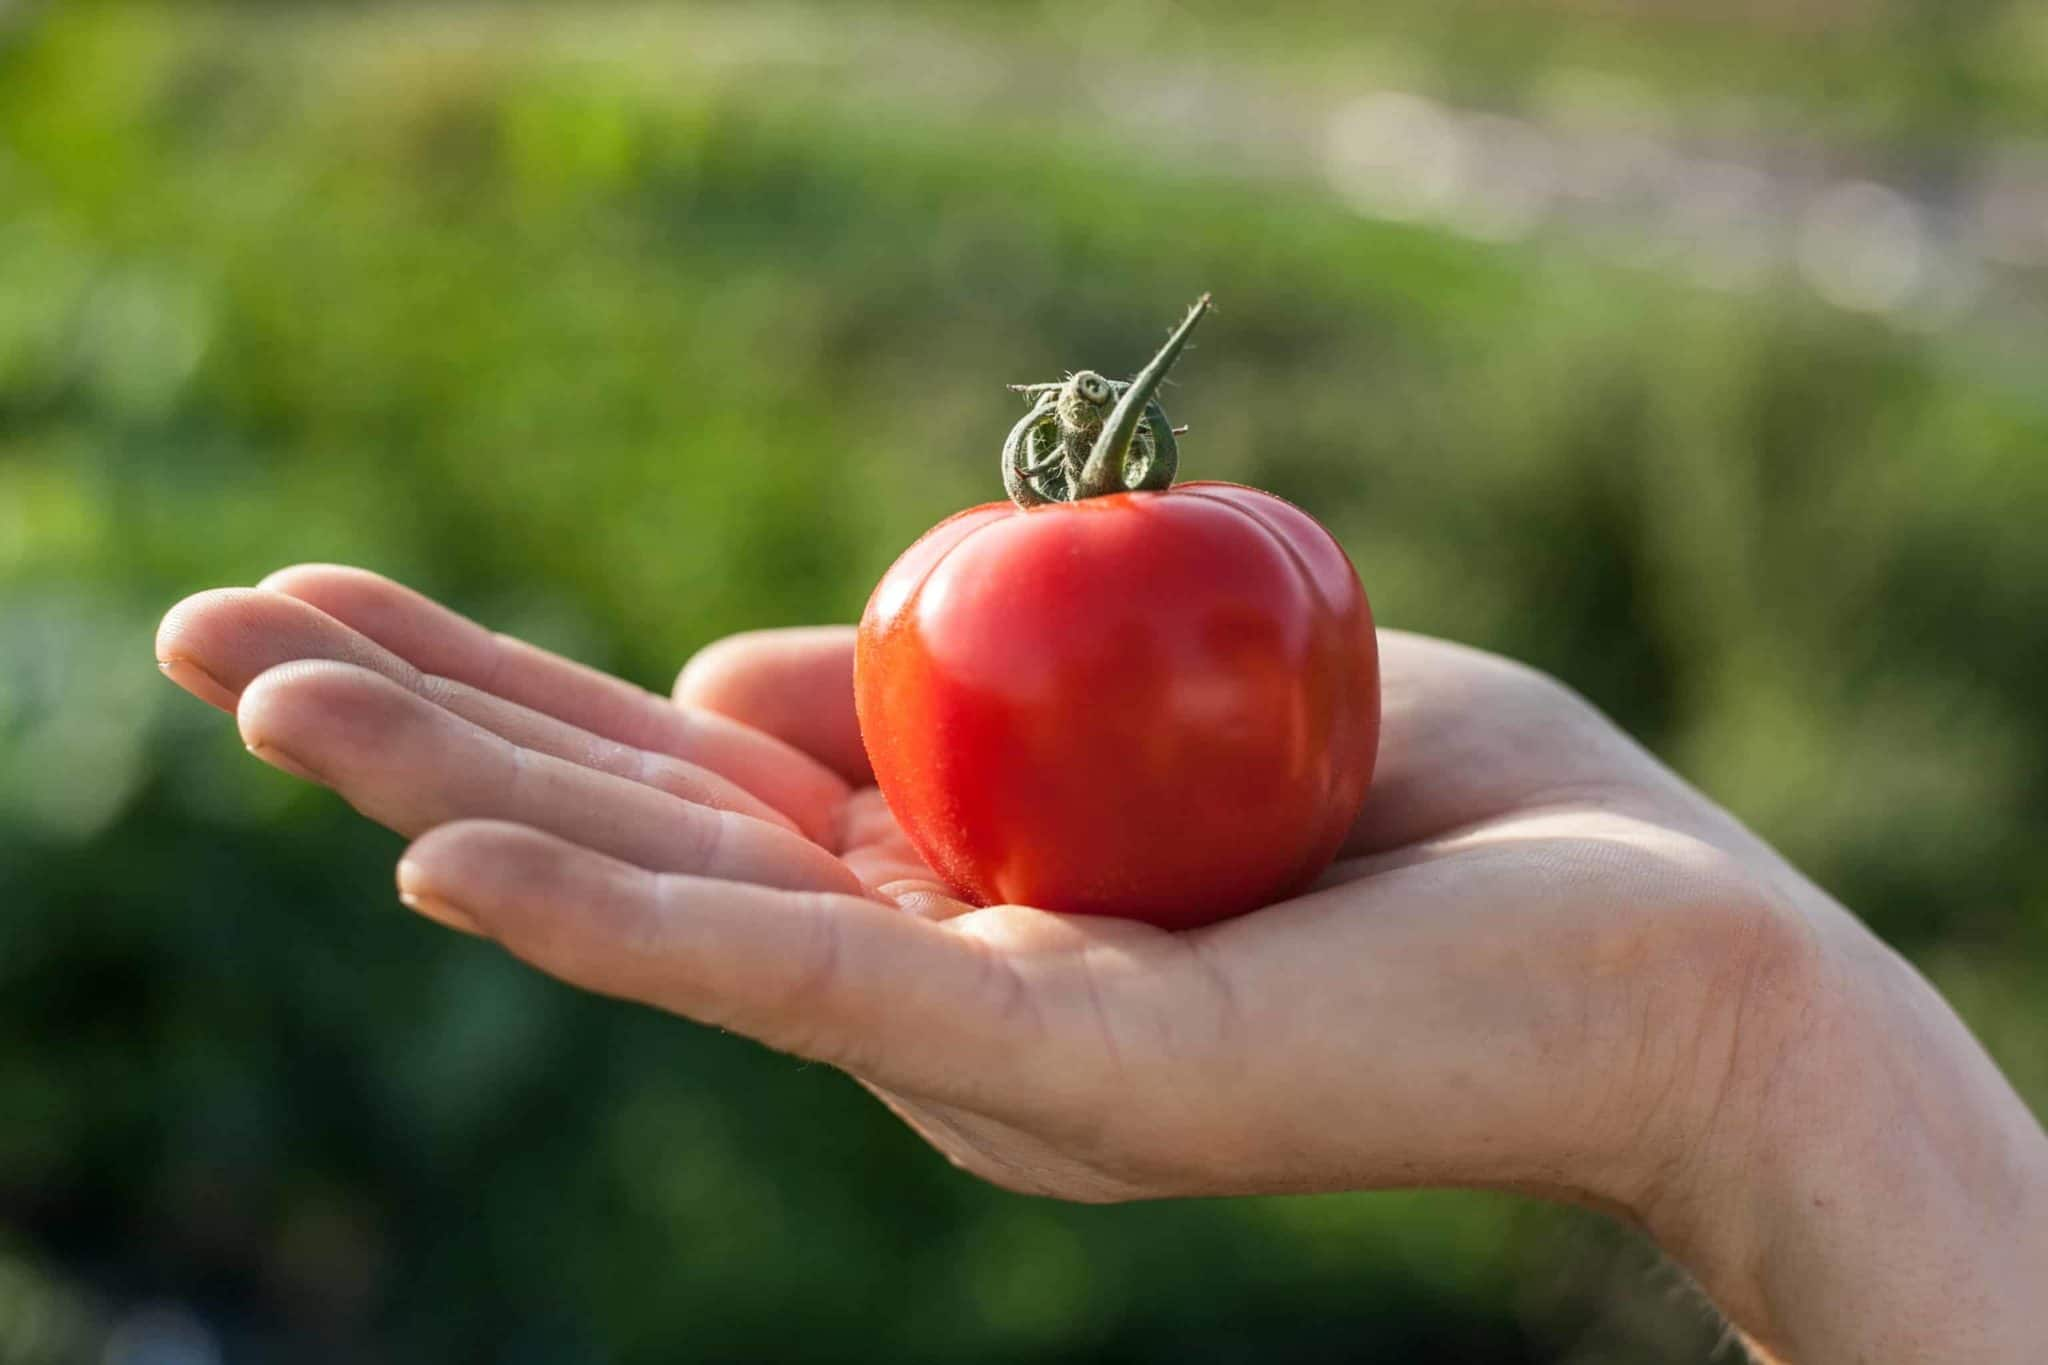 a small red tomato in a hand